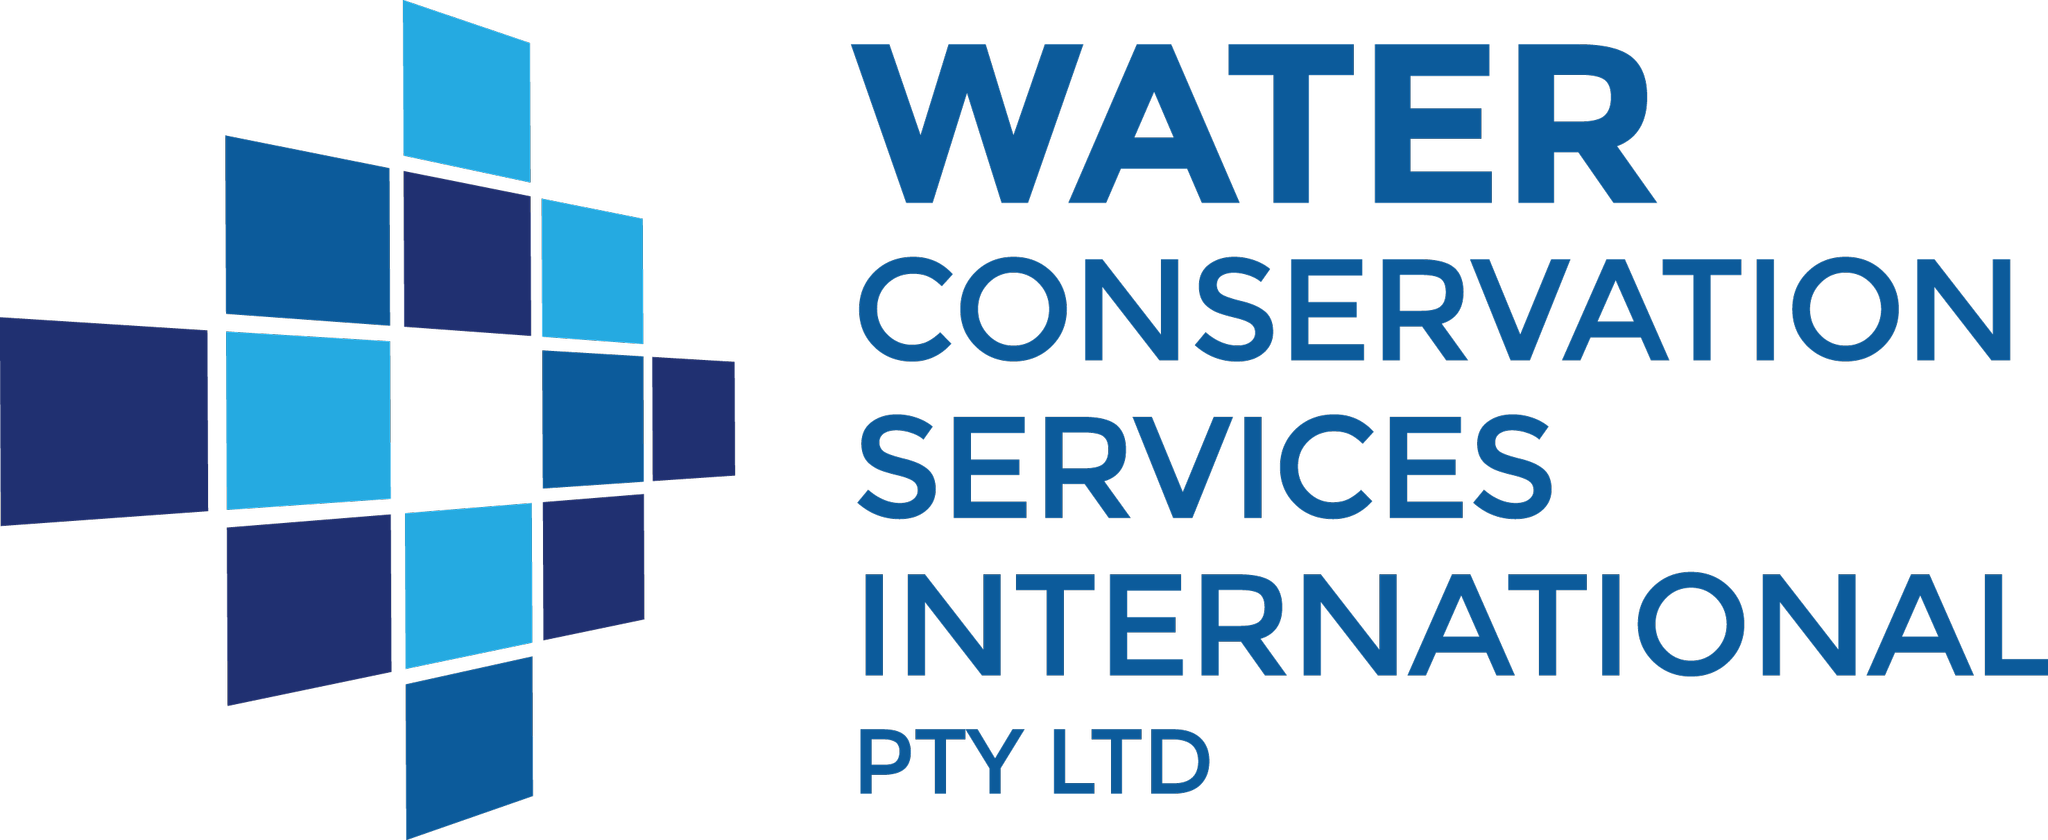 Water Conservation Services International